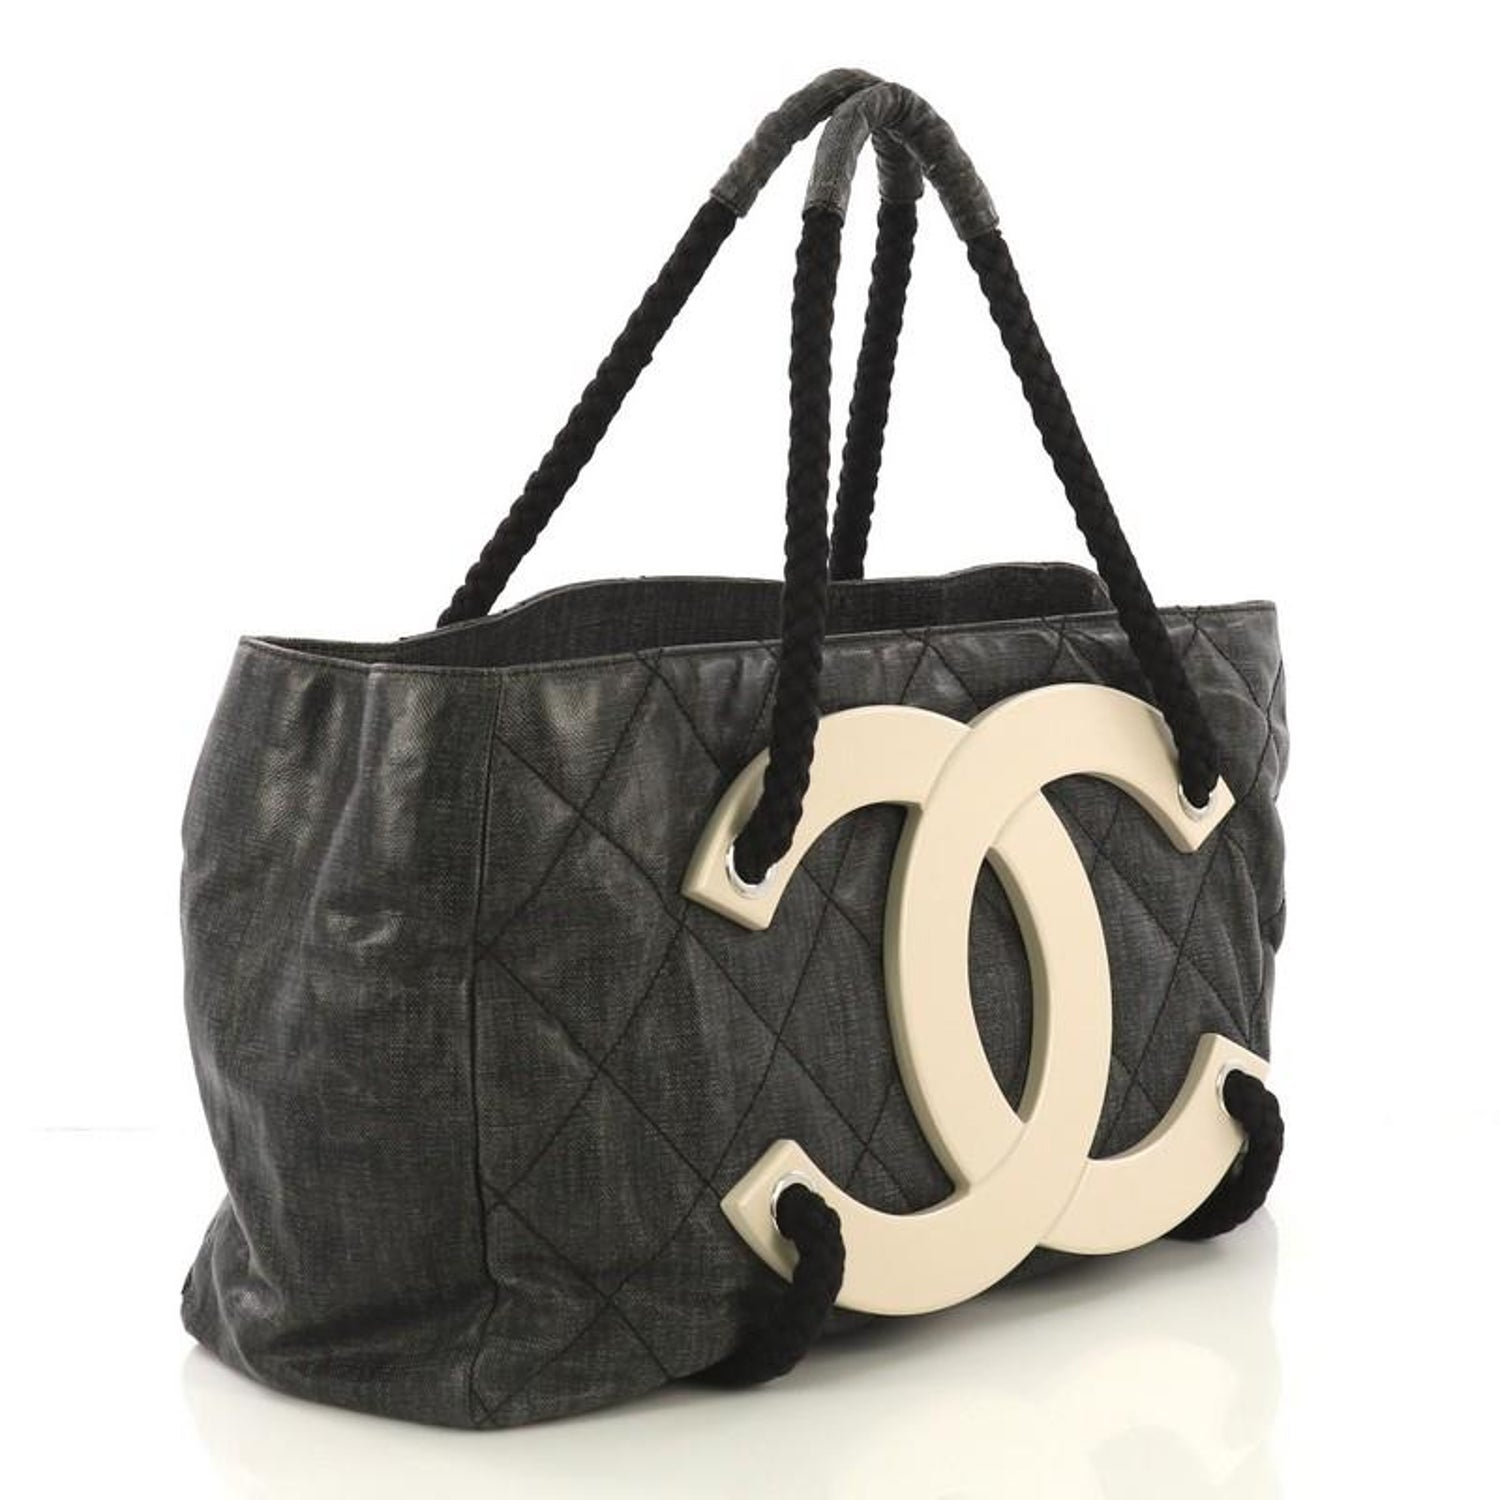 0ee22a024836 Chanel CC Beach Tote Quilted Coated Canvas Large For Sale at 1stdibs